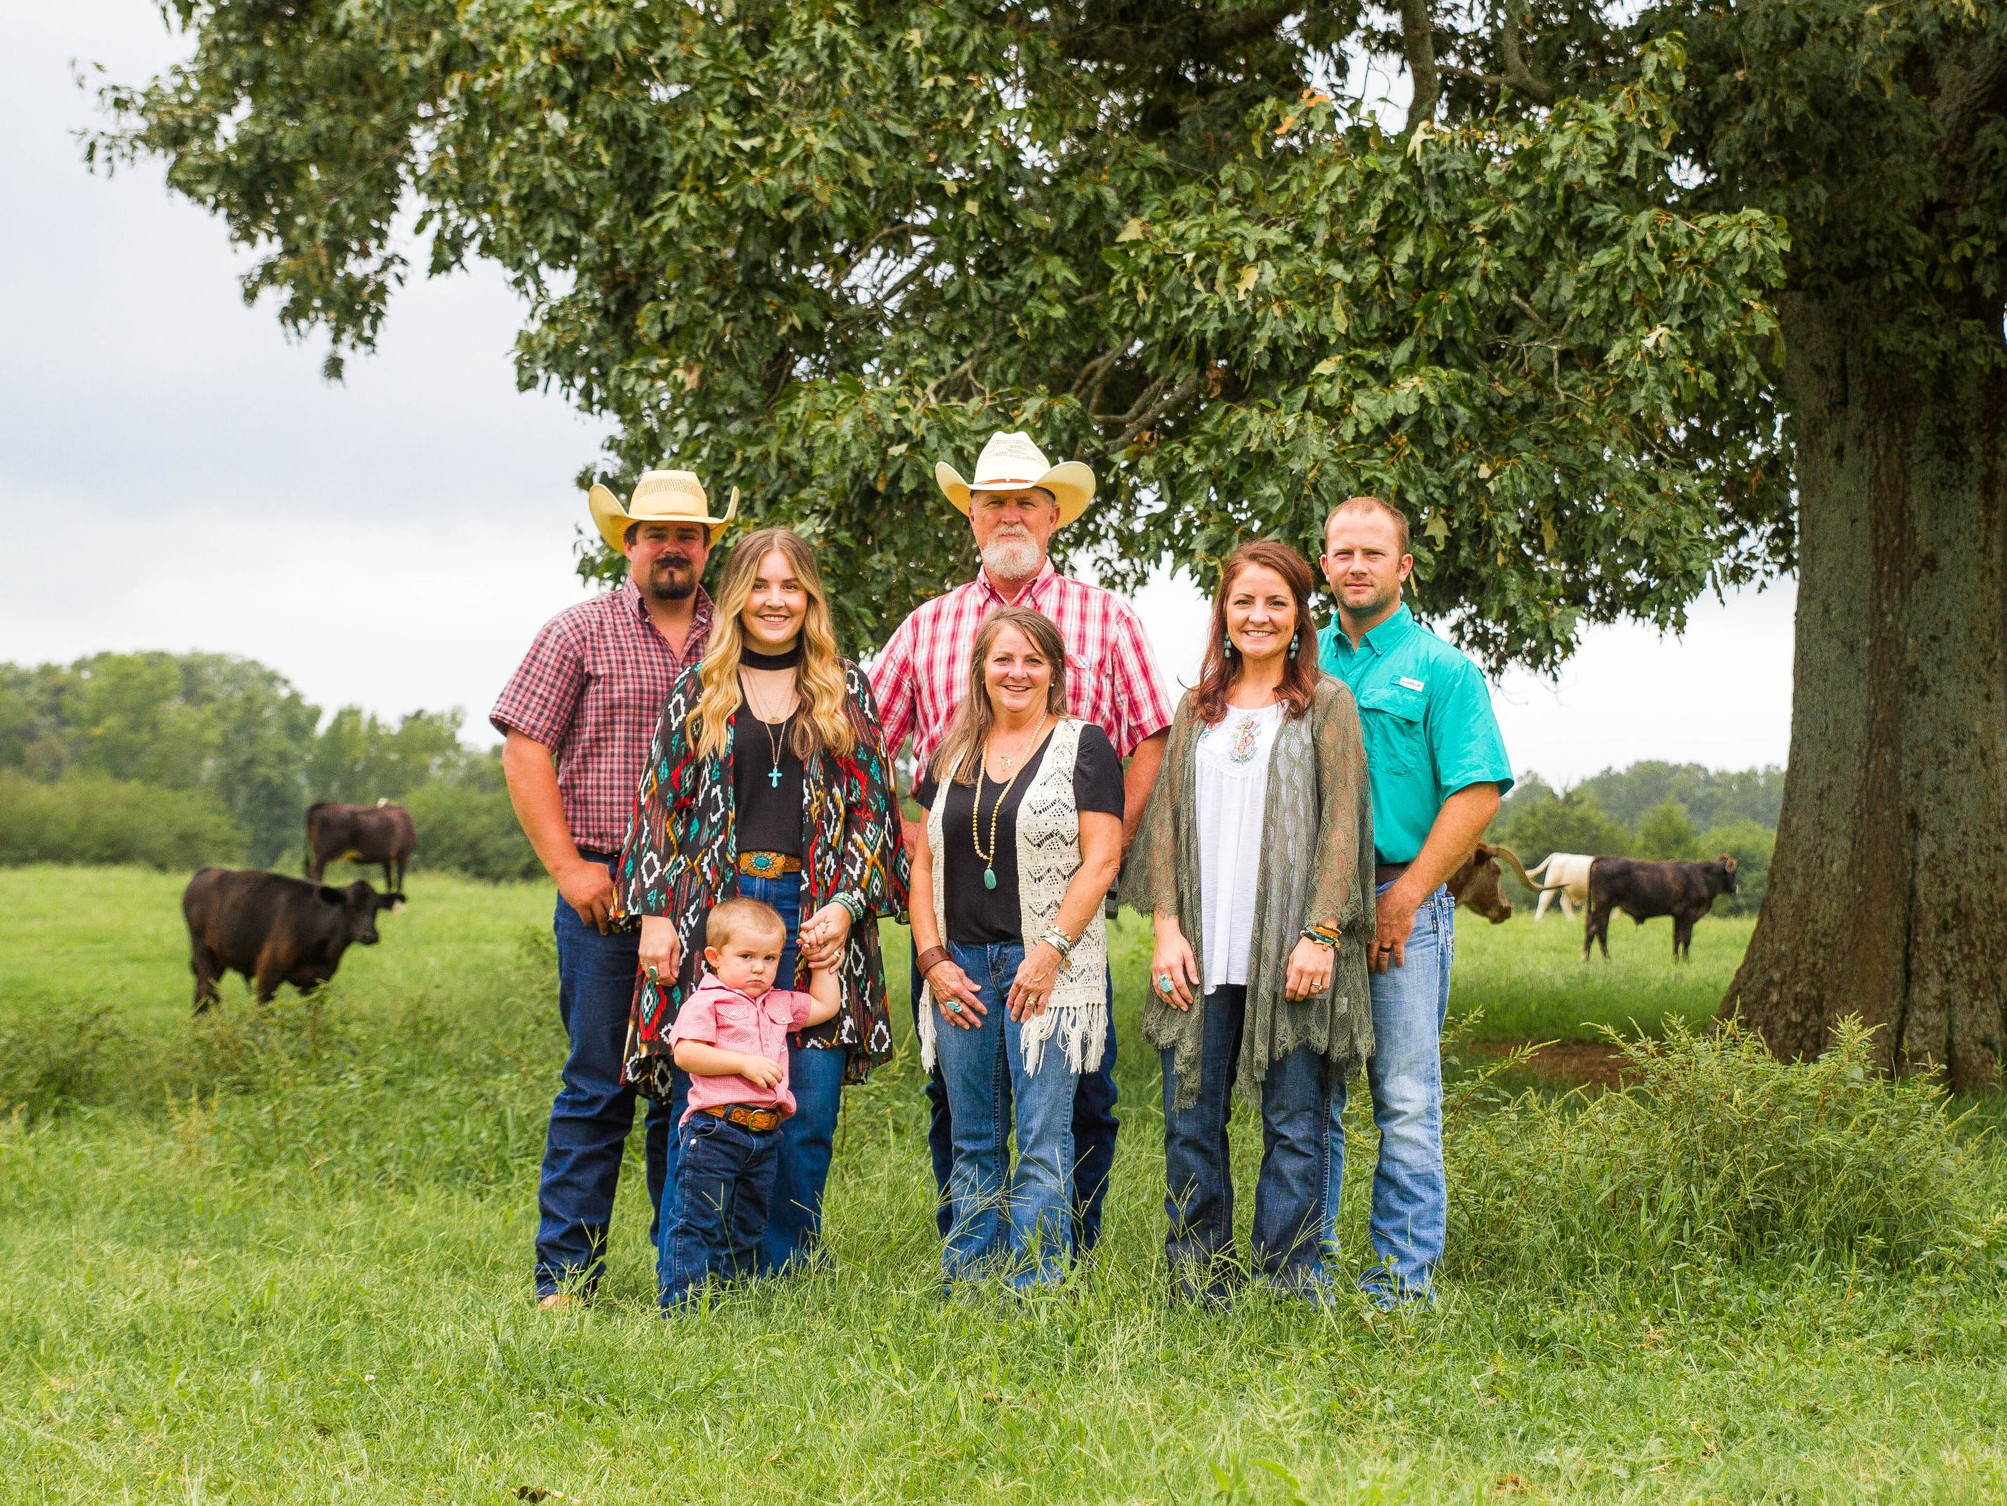 from left) Nathan Cox, Heather Cox, Jasper Cox, Raymond Daley Jr., Cendie Daley, Amanda Galloway and Travis Galloway on the family farm.